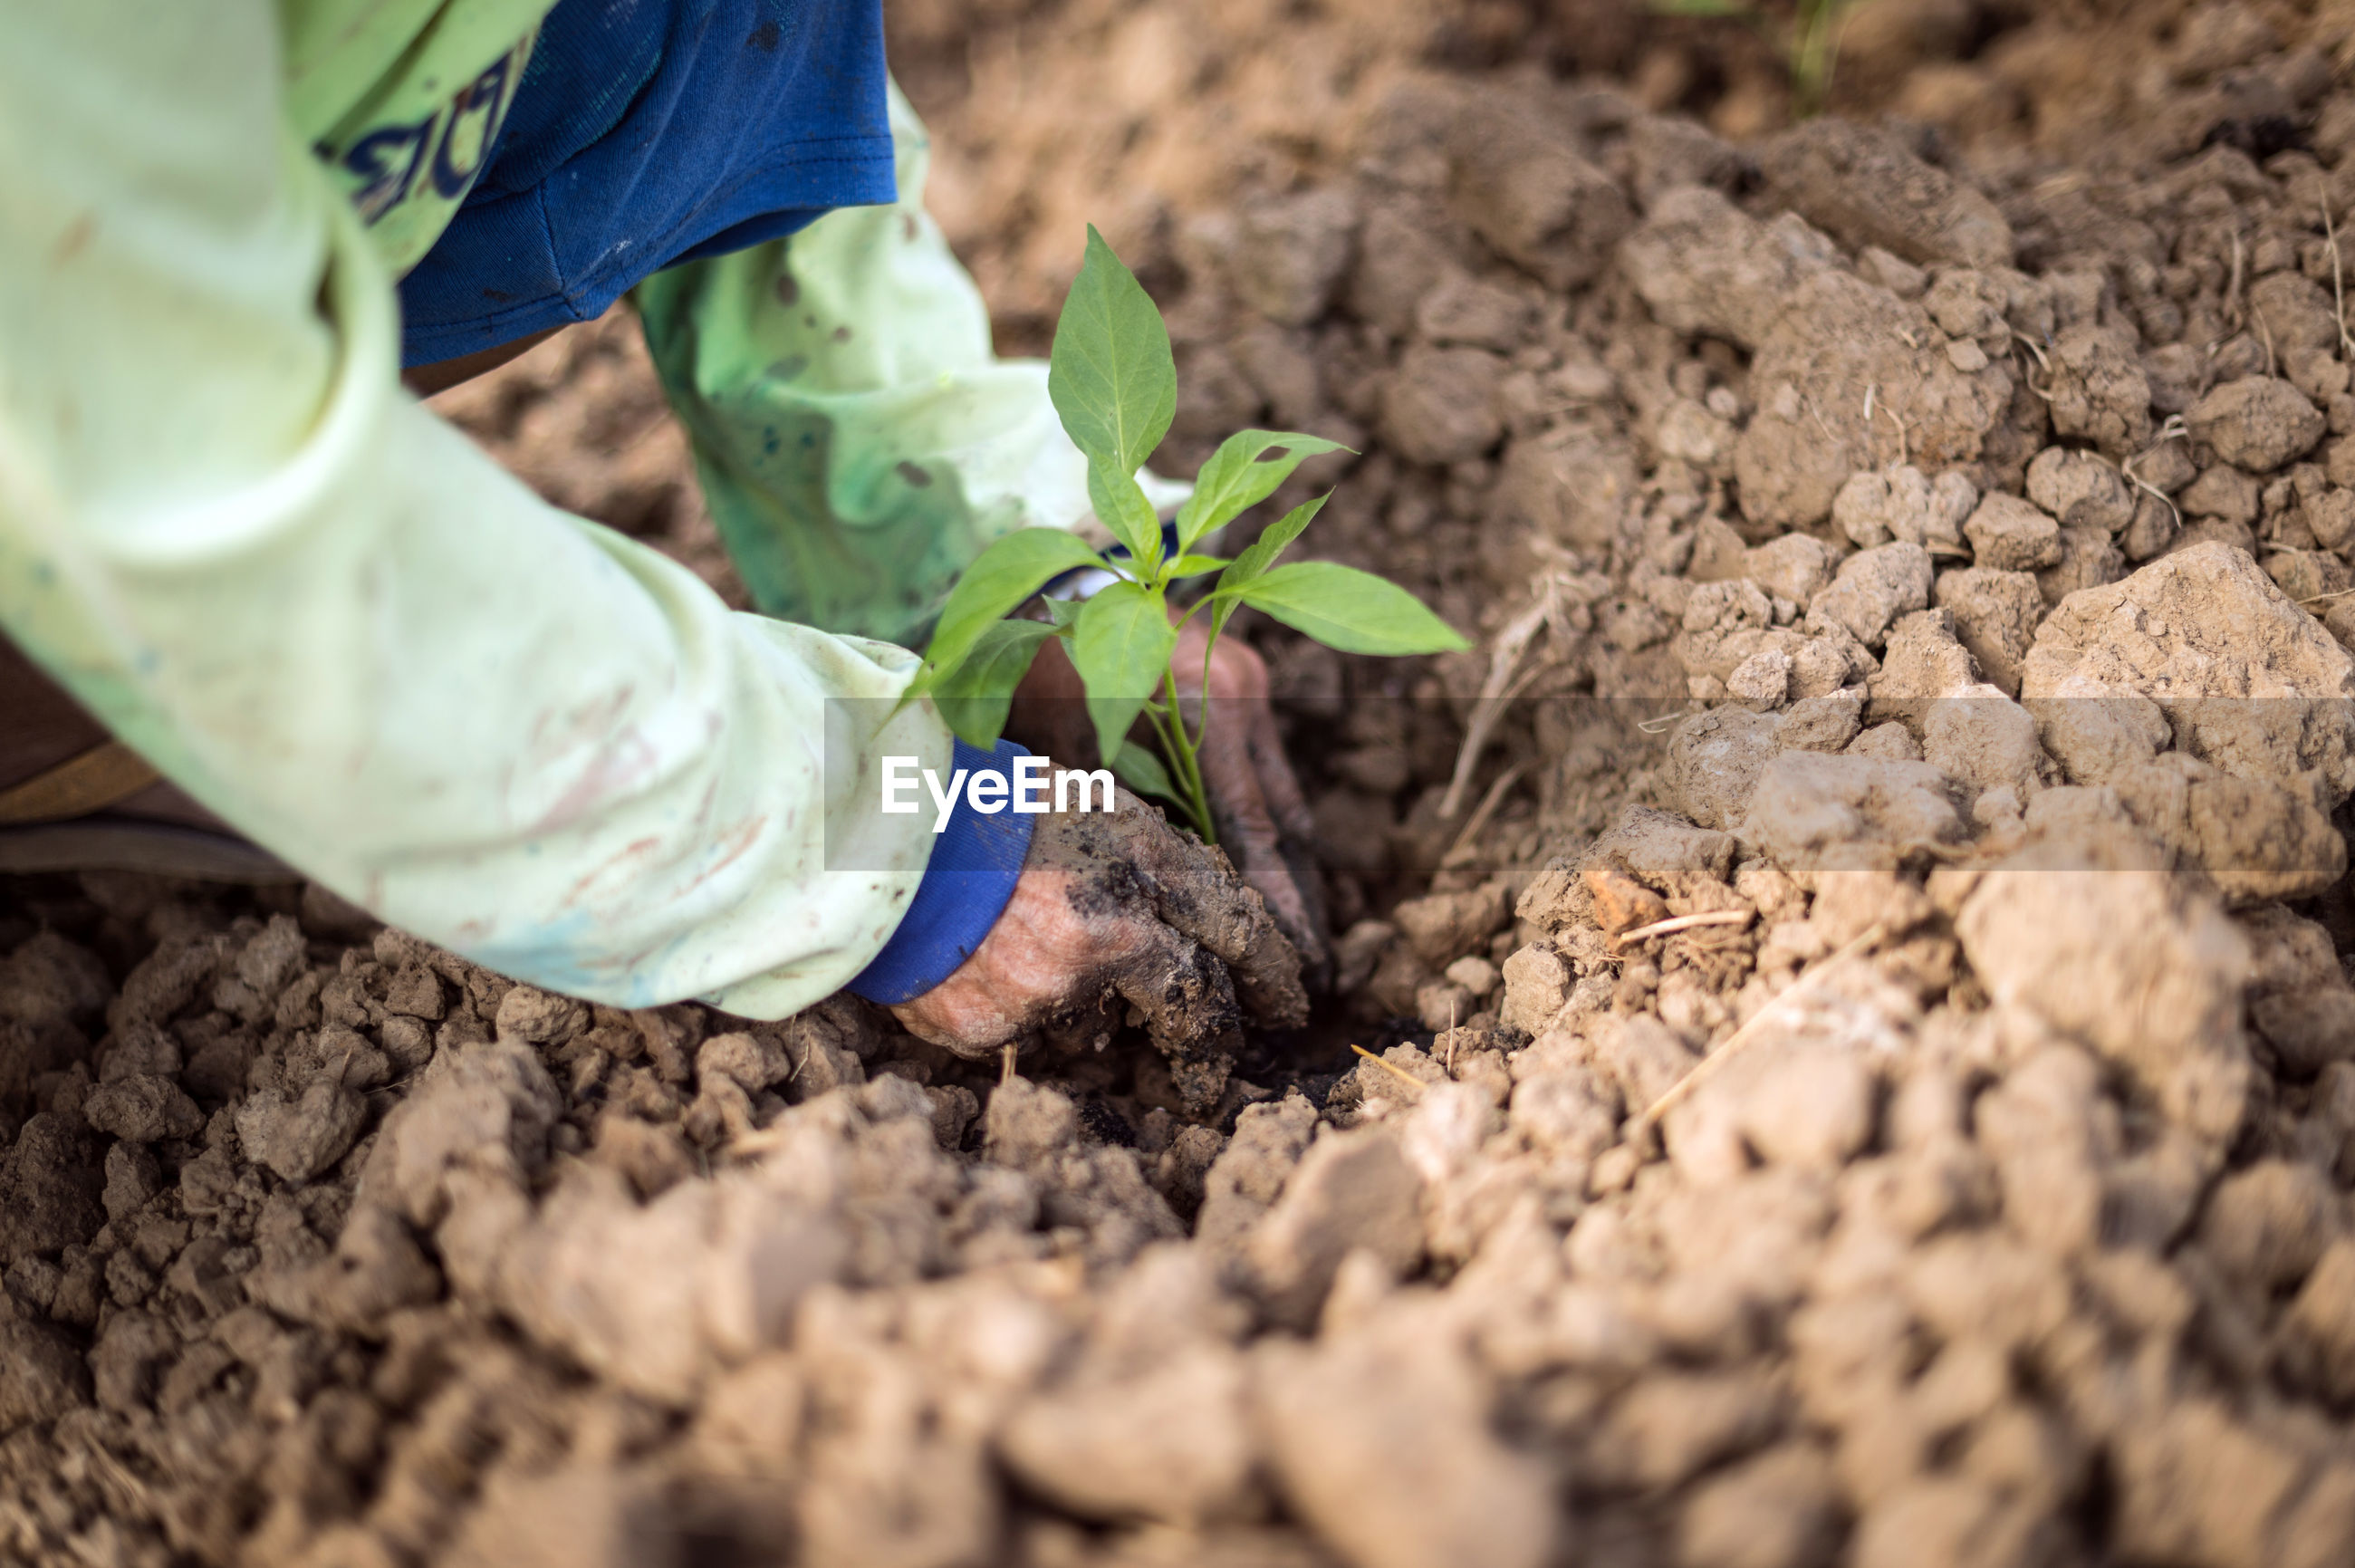 Midsection of person planting on field